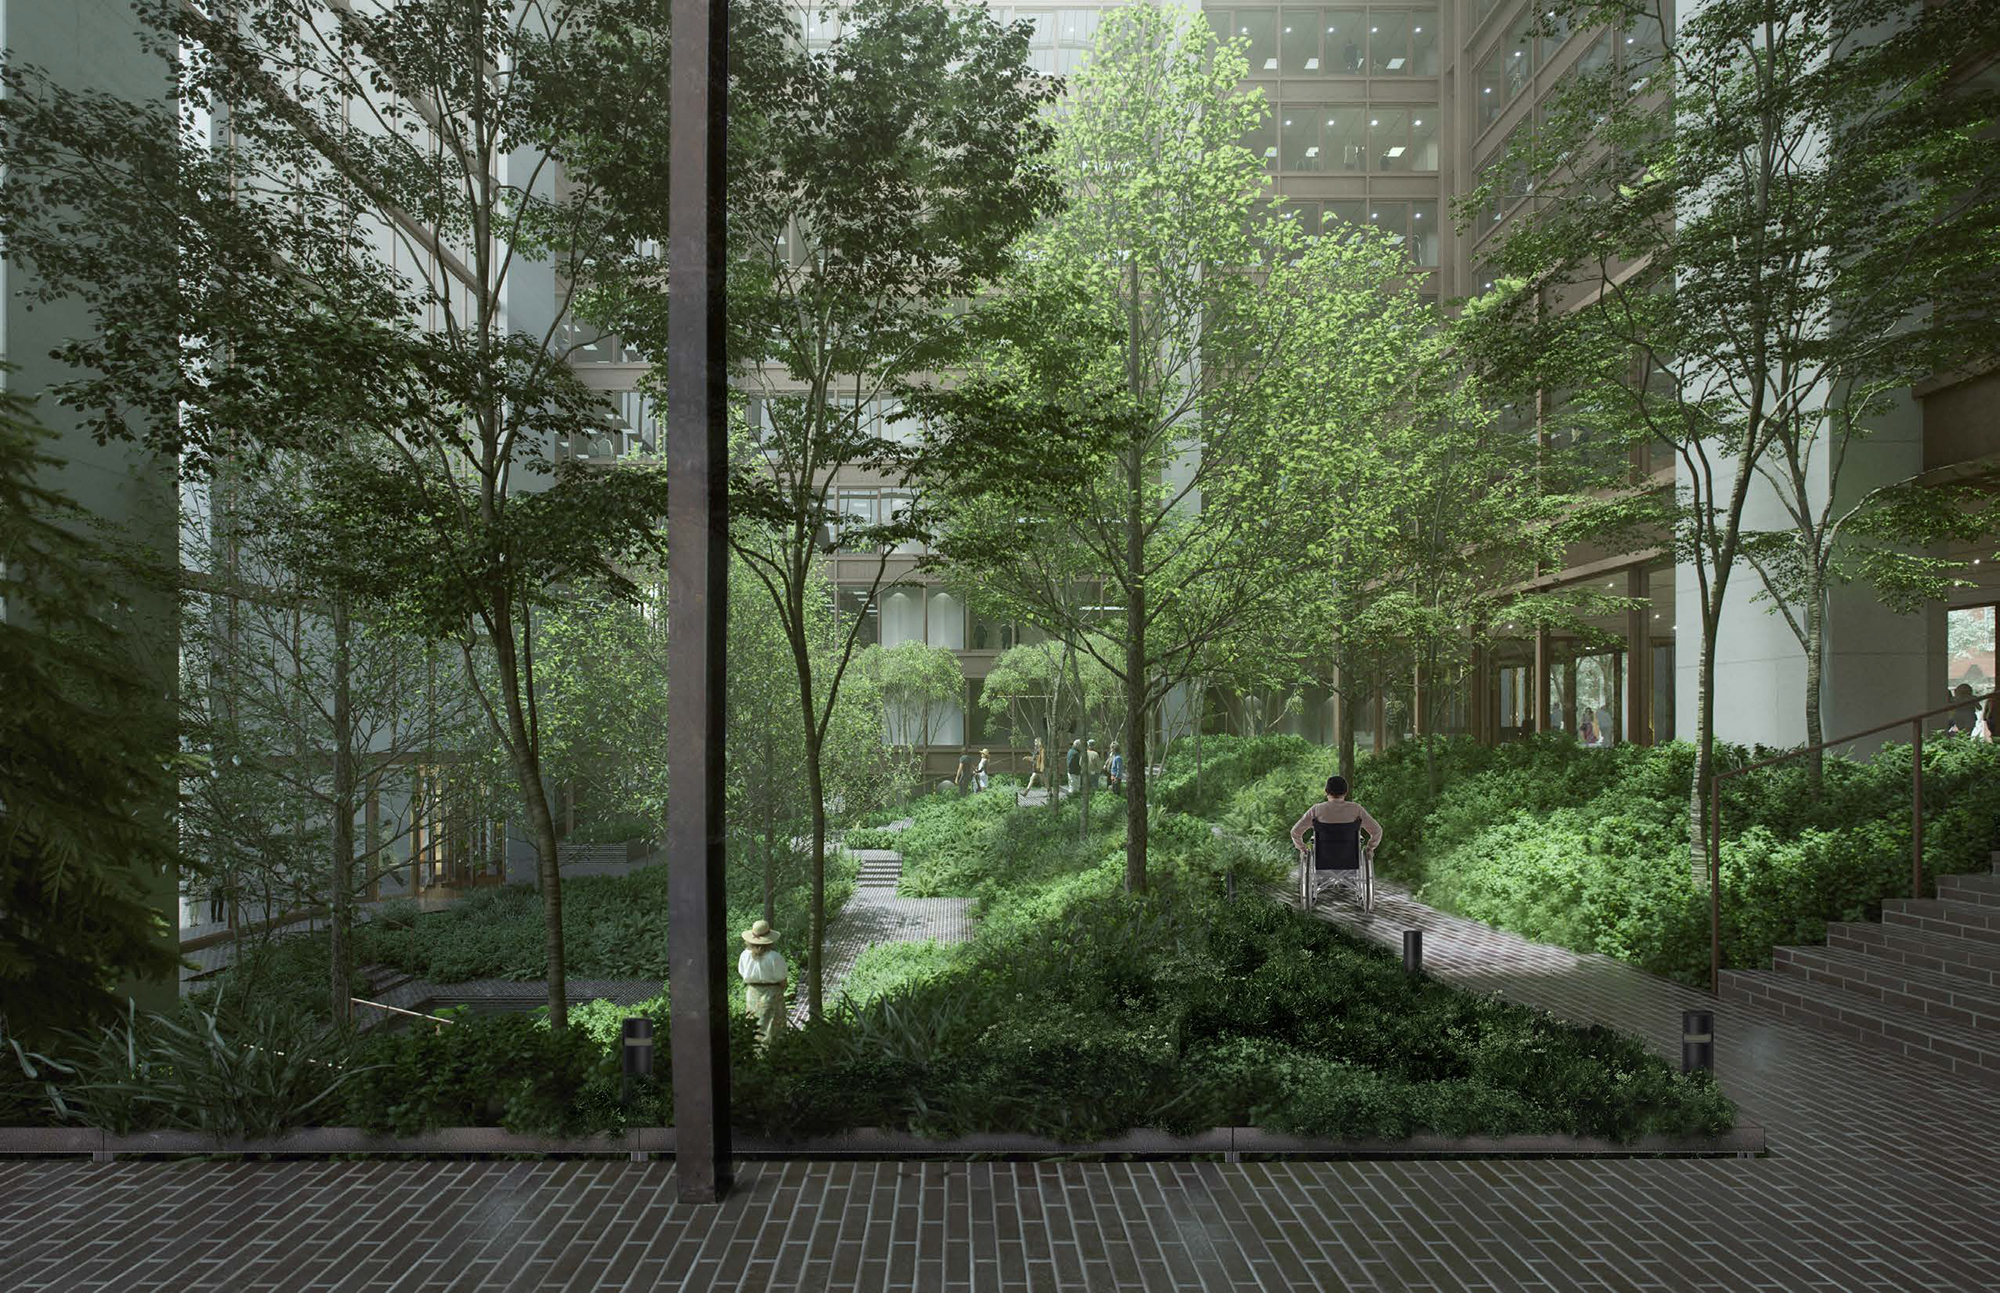 Proposed conditions at the Ford Foundation Building